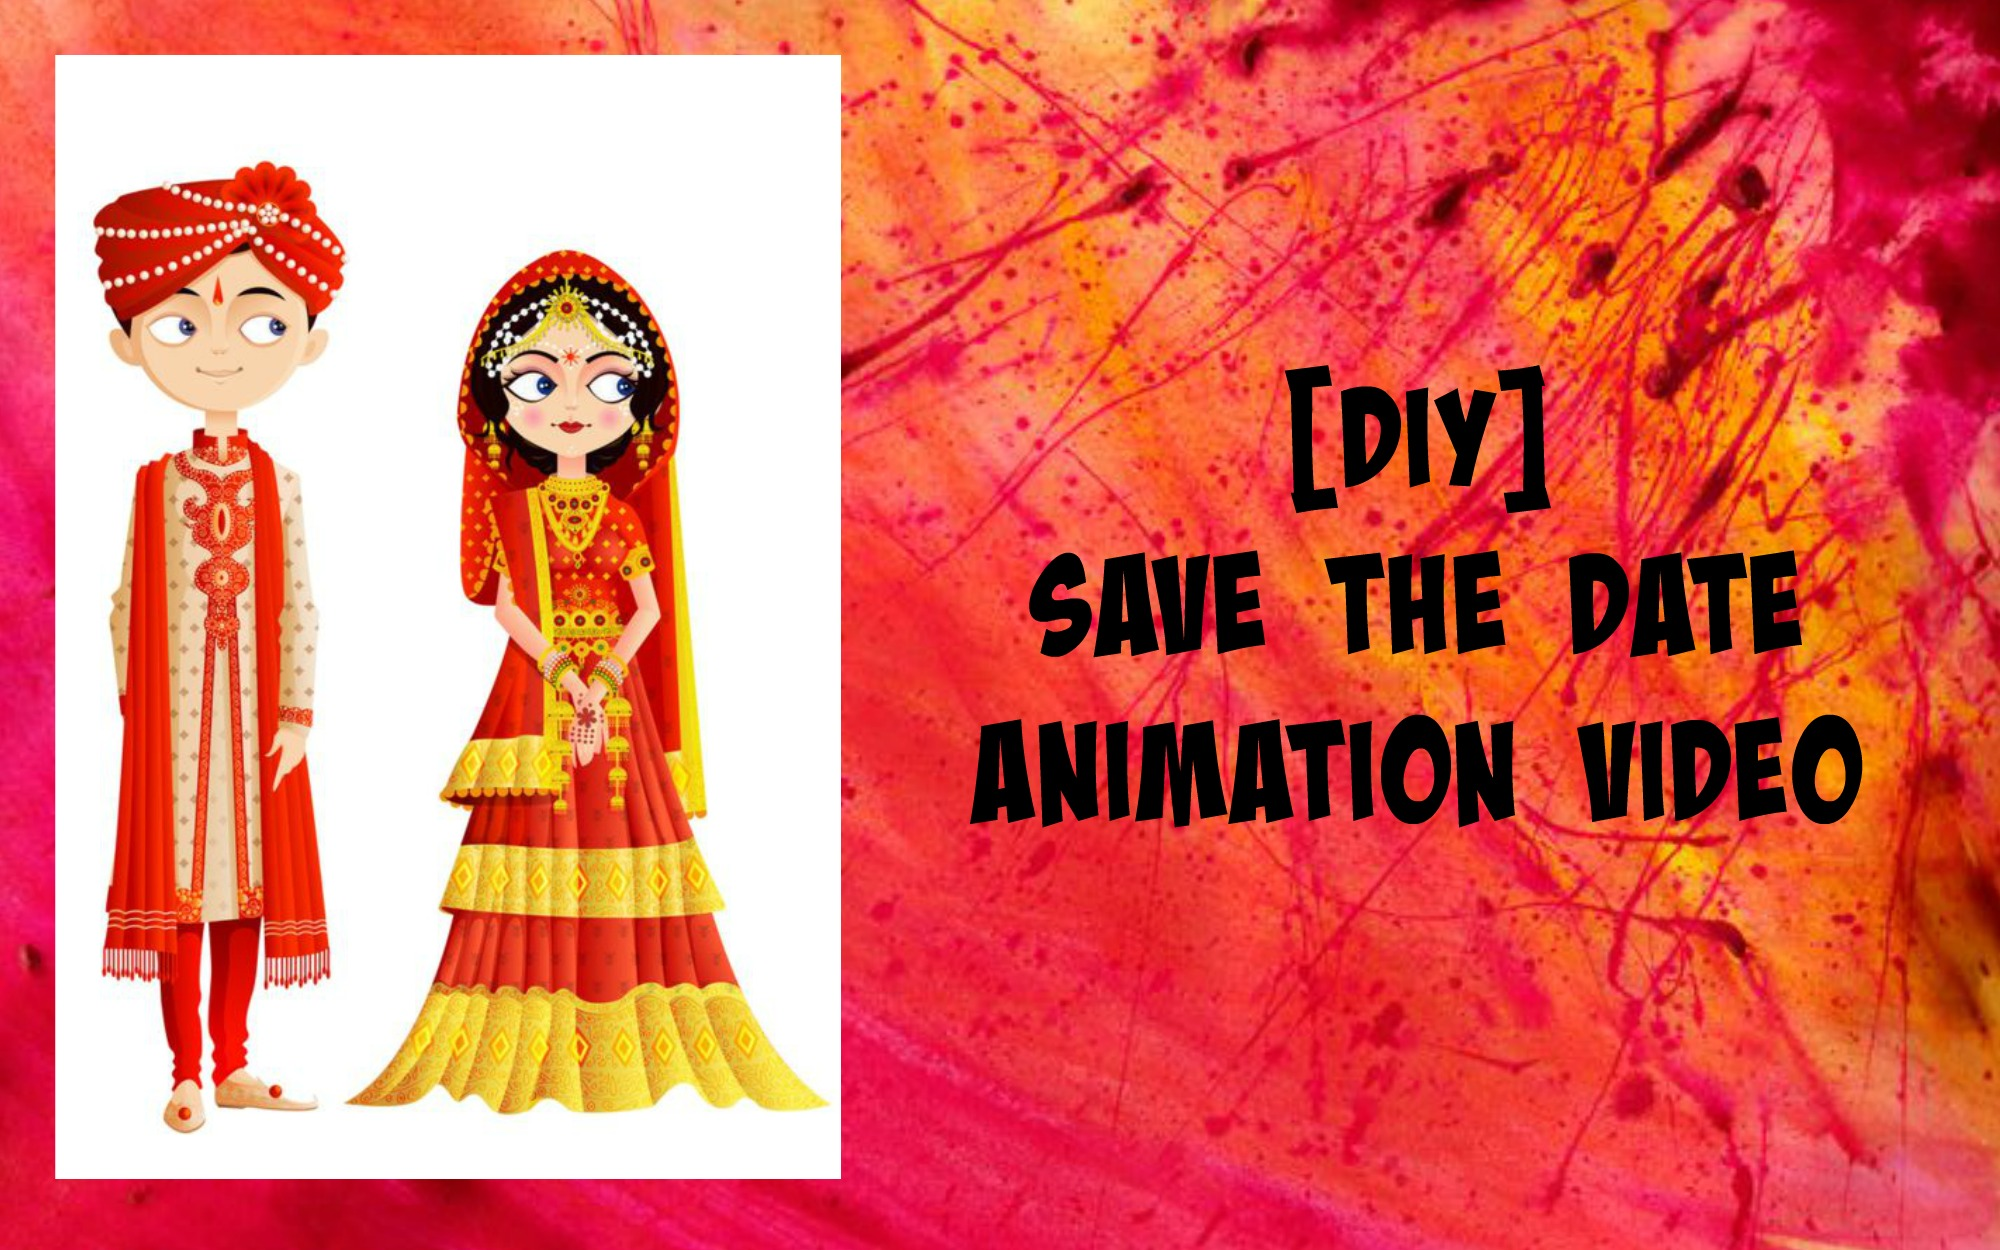 DIY save the date animation video